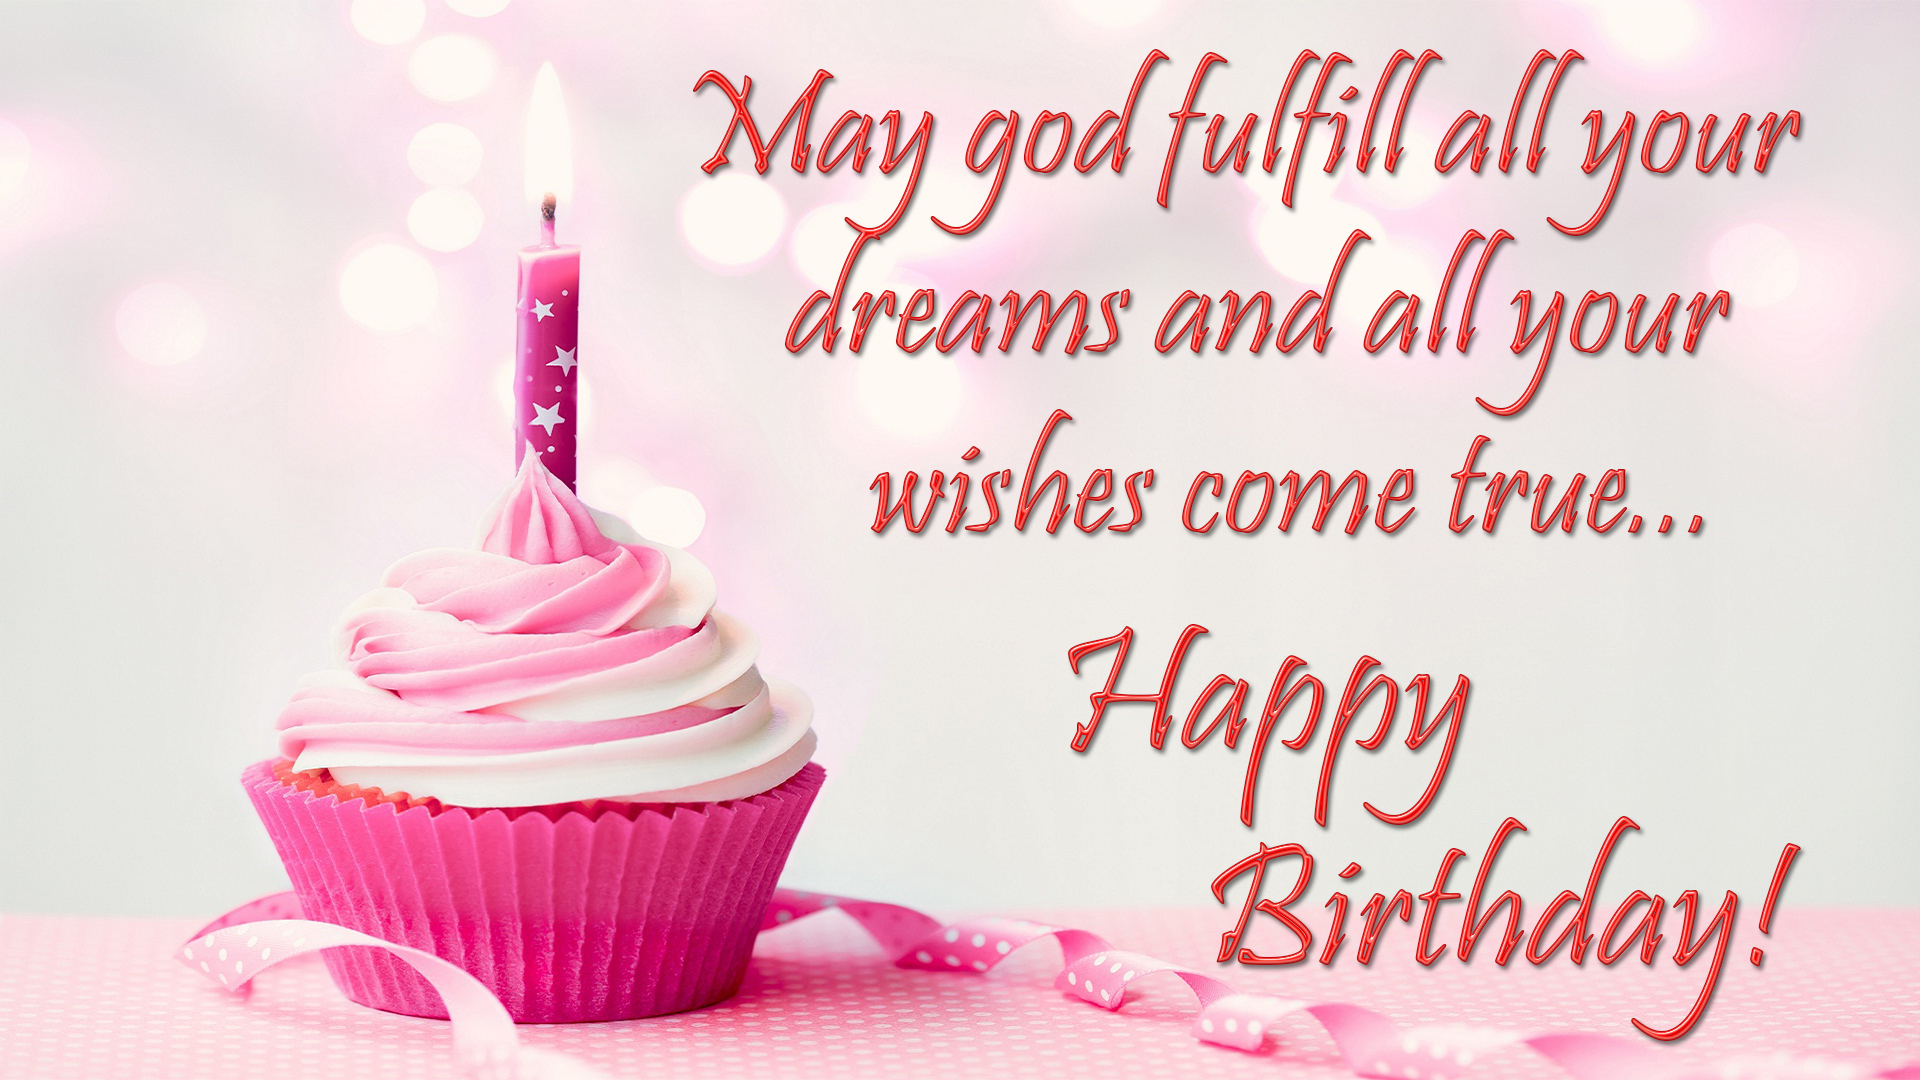 Happy Birthday Greeting Cards Images 2018 Birthday Wishes